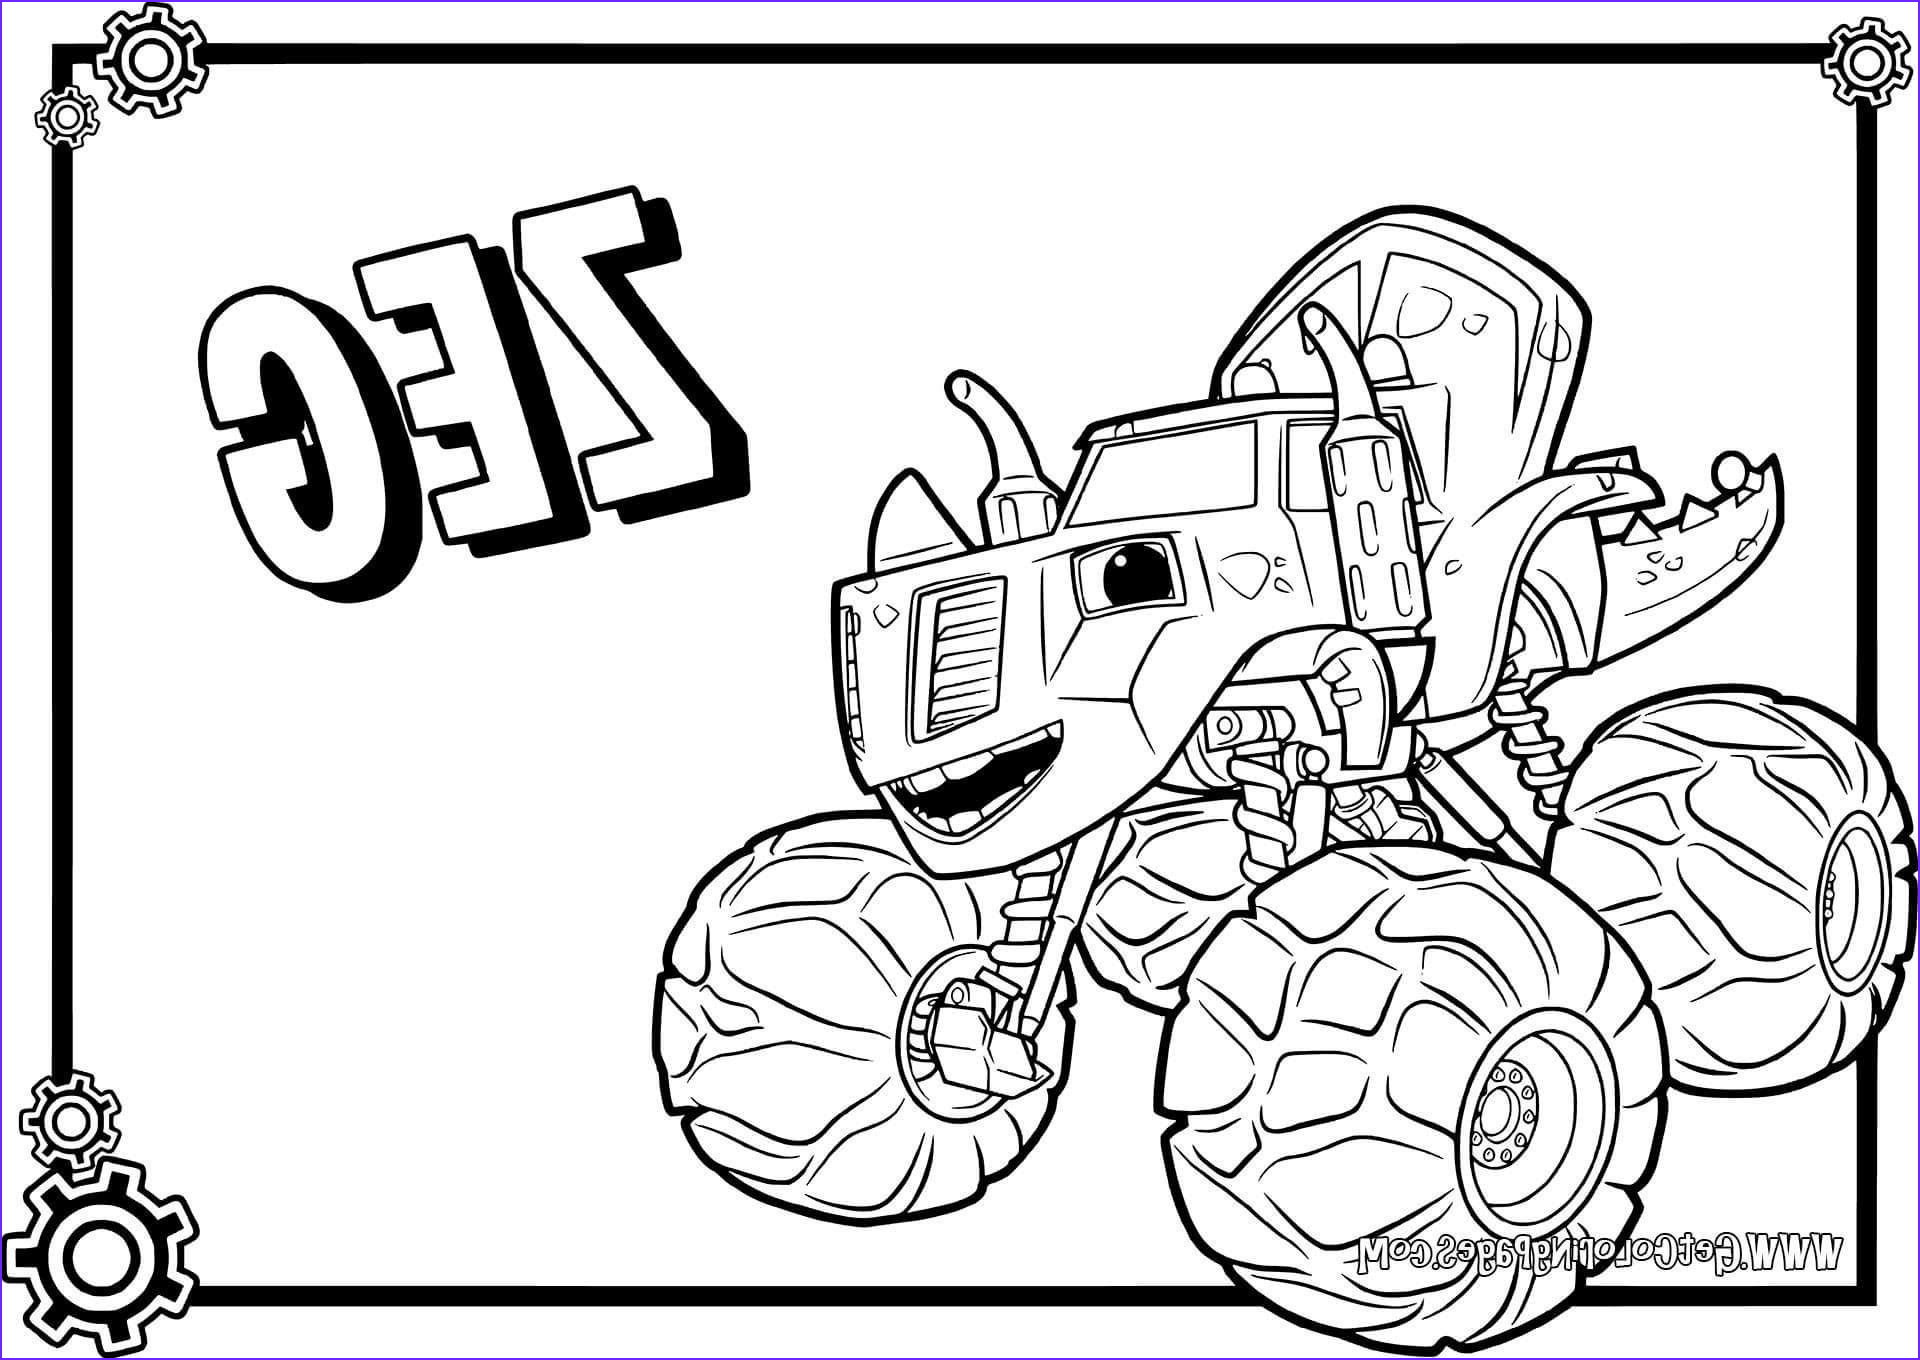 Blaze Coloring Sheet New Images Blaze and the Monster Machines Coloring Pages Lovely